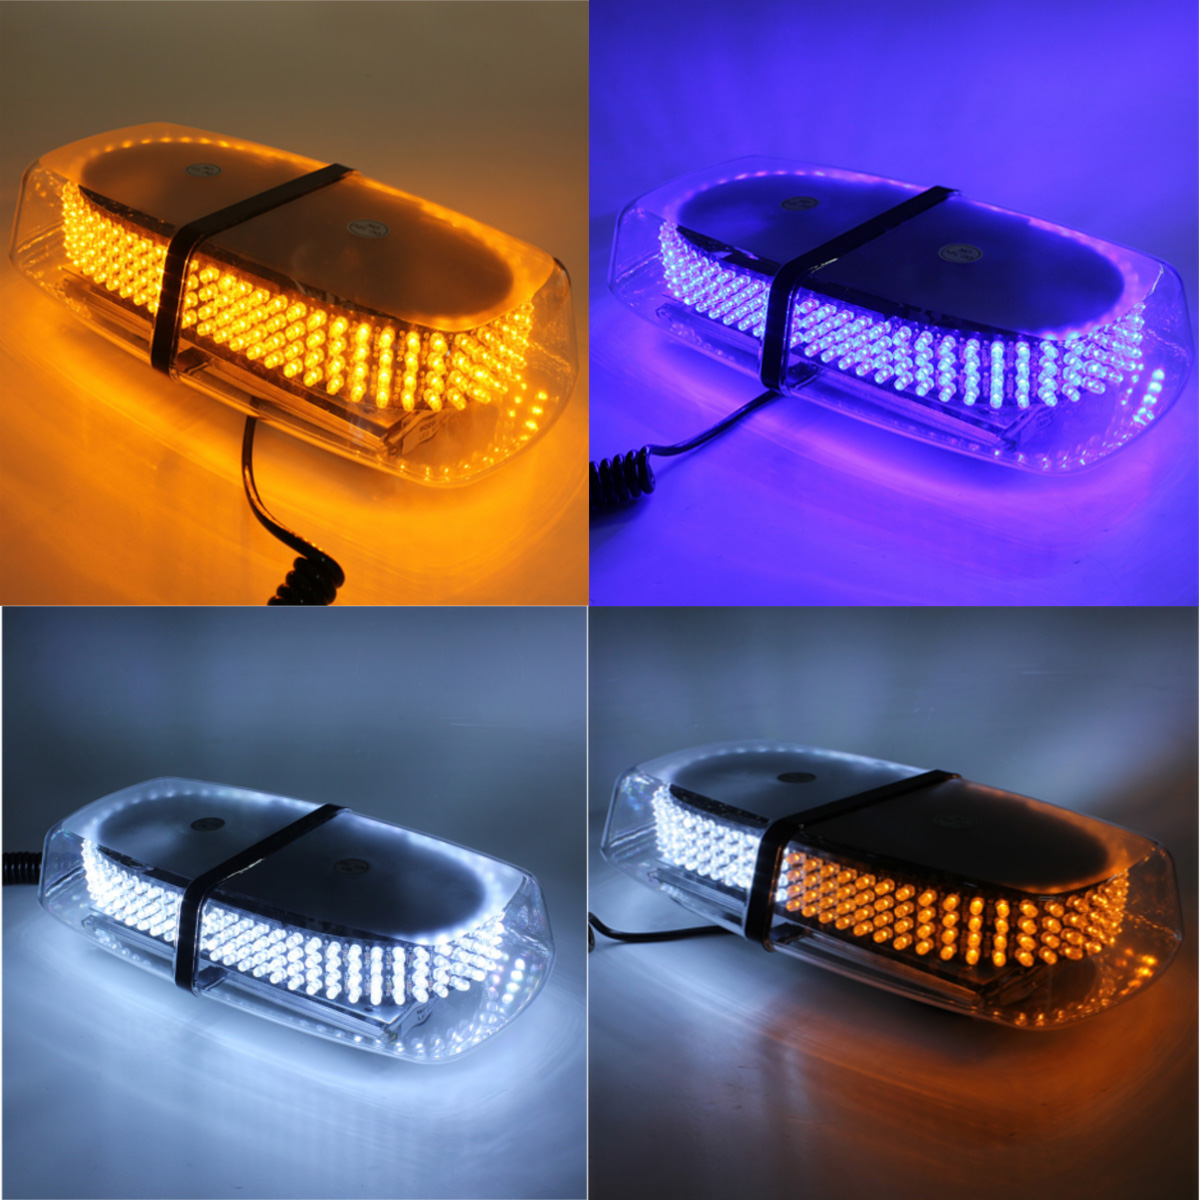 12v 2x4 amber blanc led voiture strobe clignotant feux urgence stroboscopique ebay. Black Bedroom Furniture Sets. Home Design Ideas